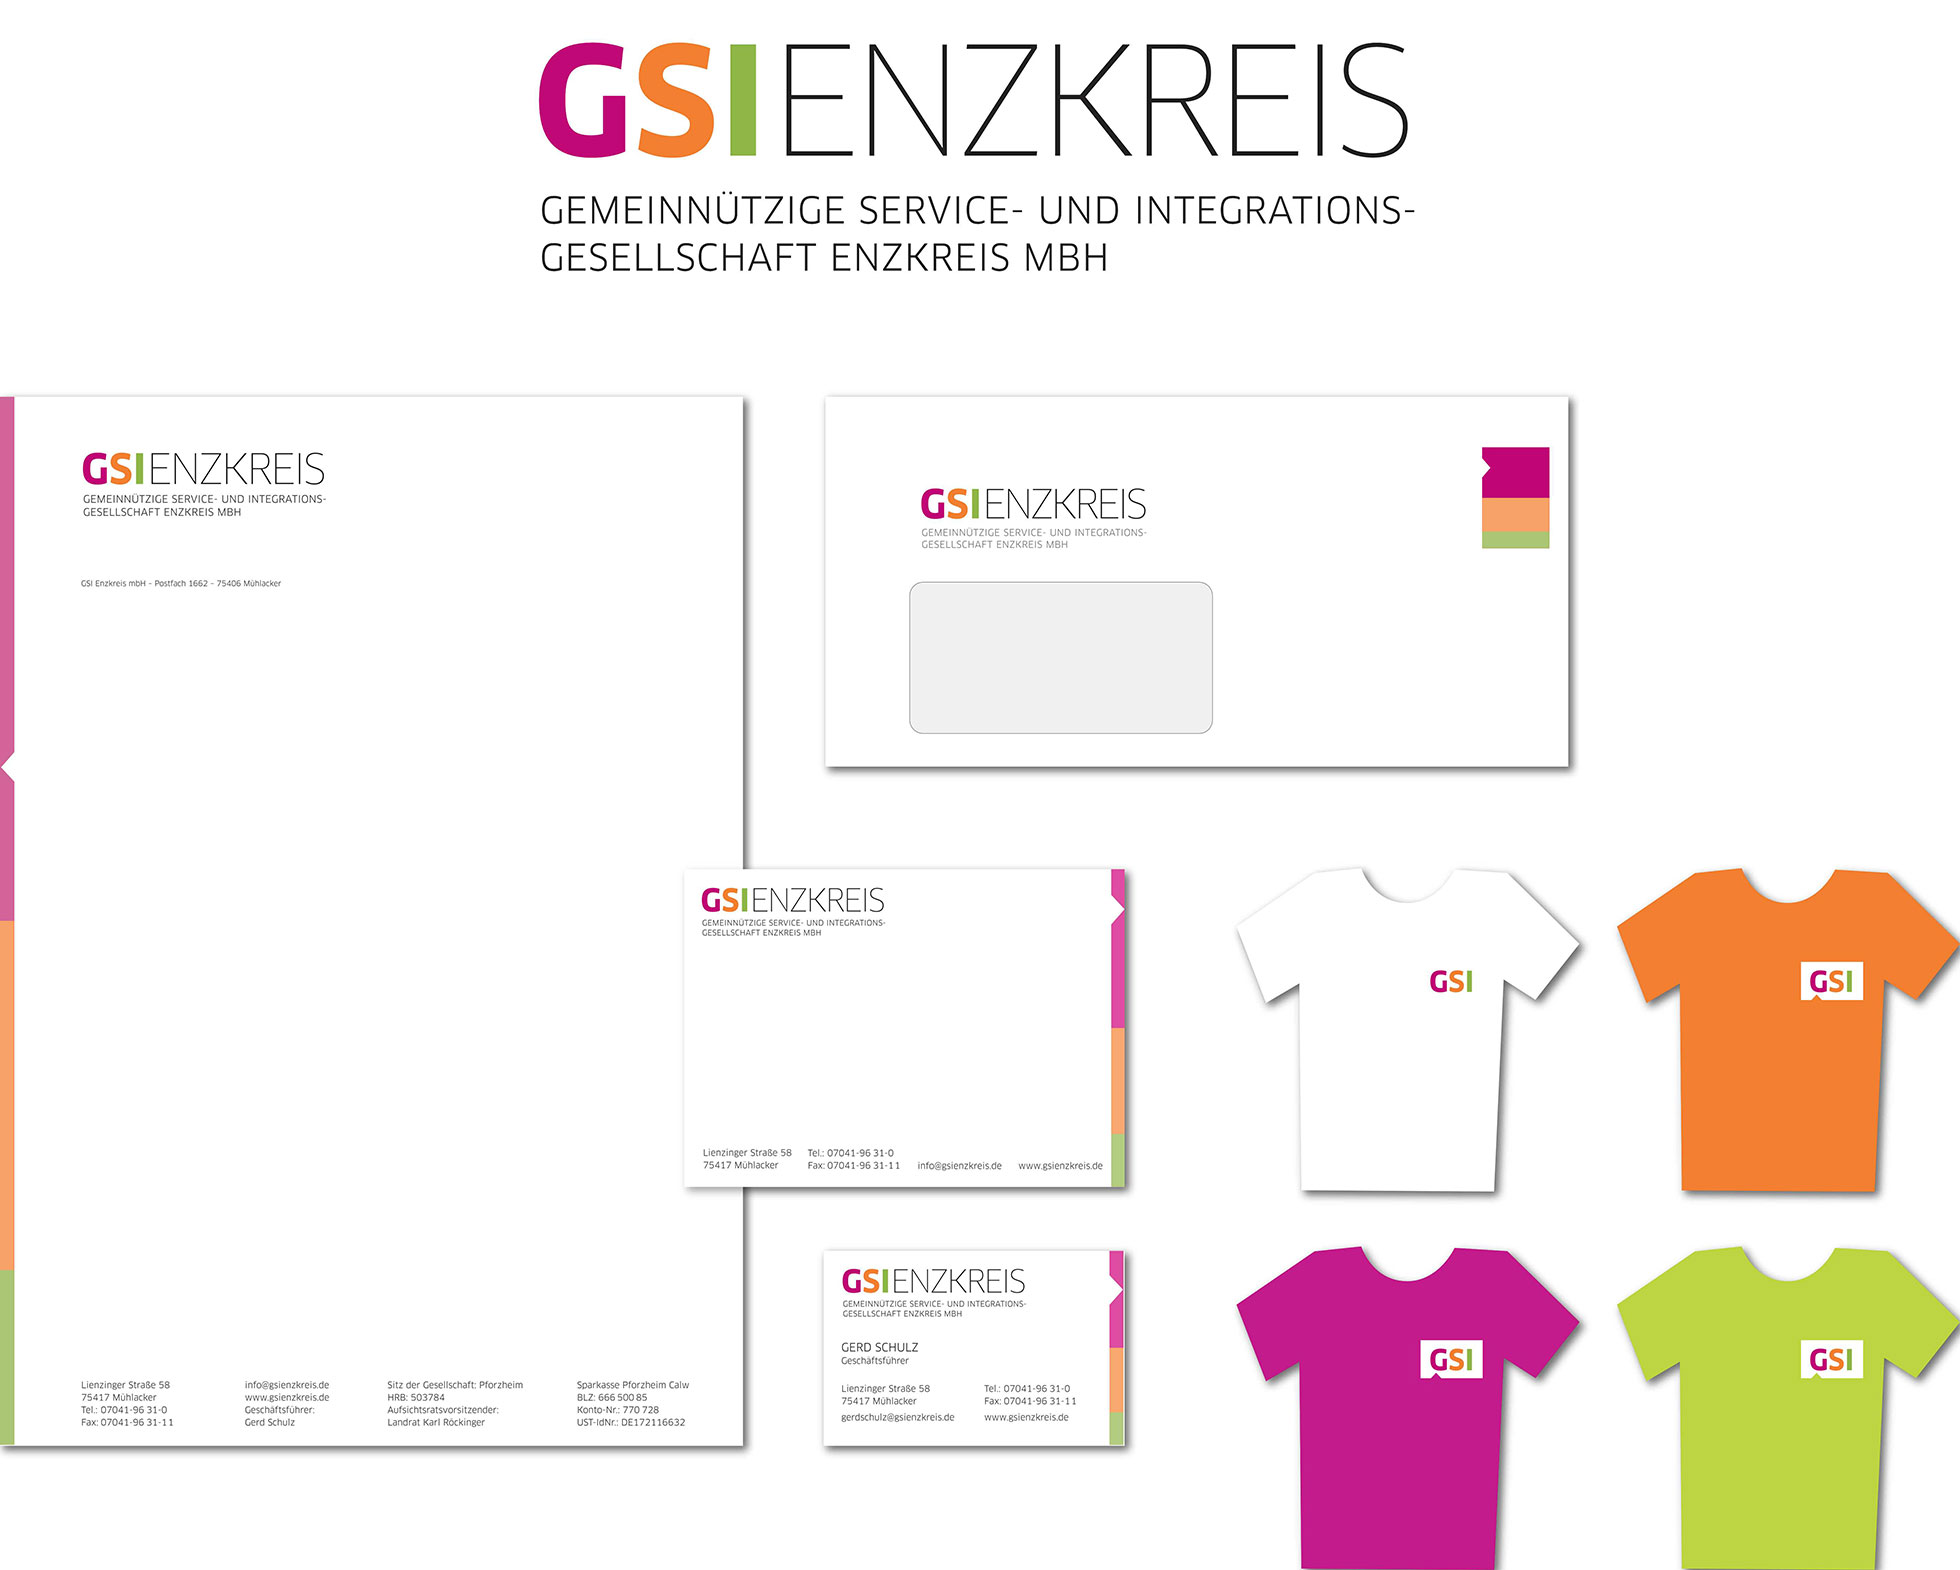 GSI Briefbogen, Vistenkarten, T-shirt